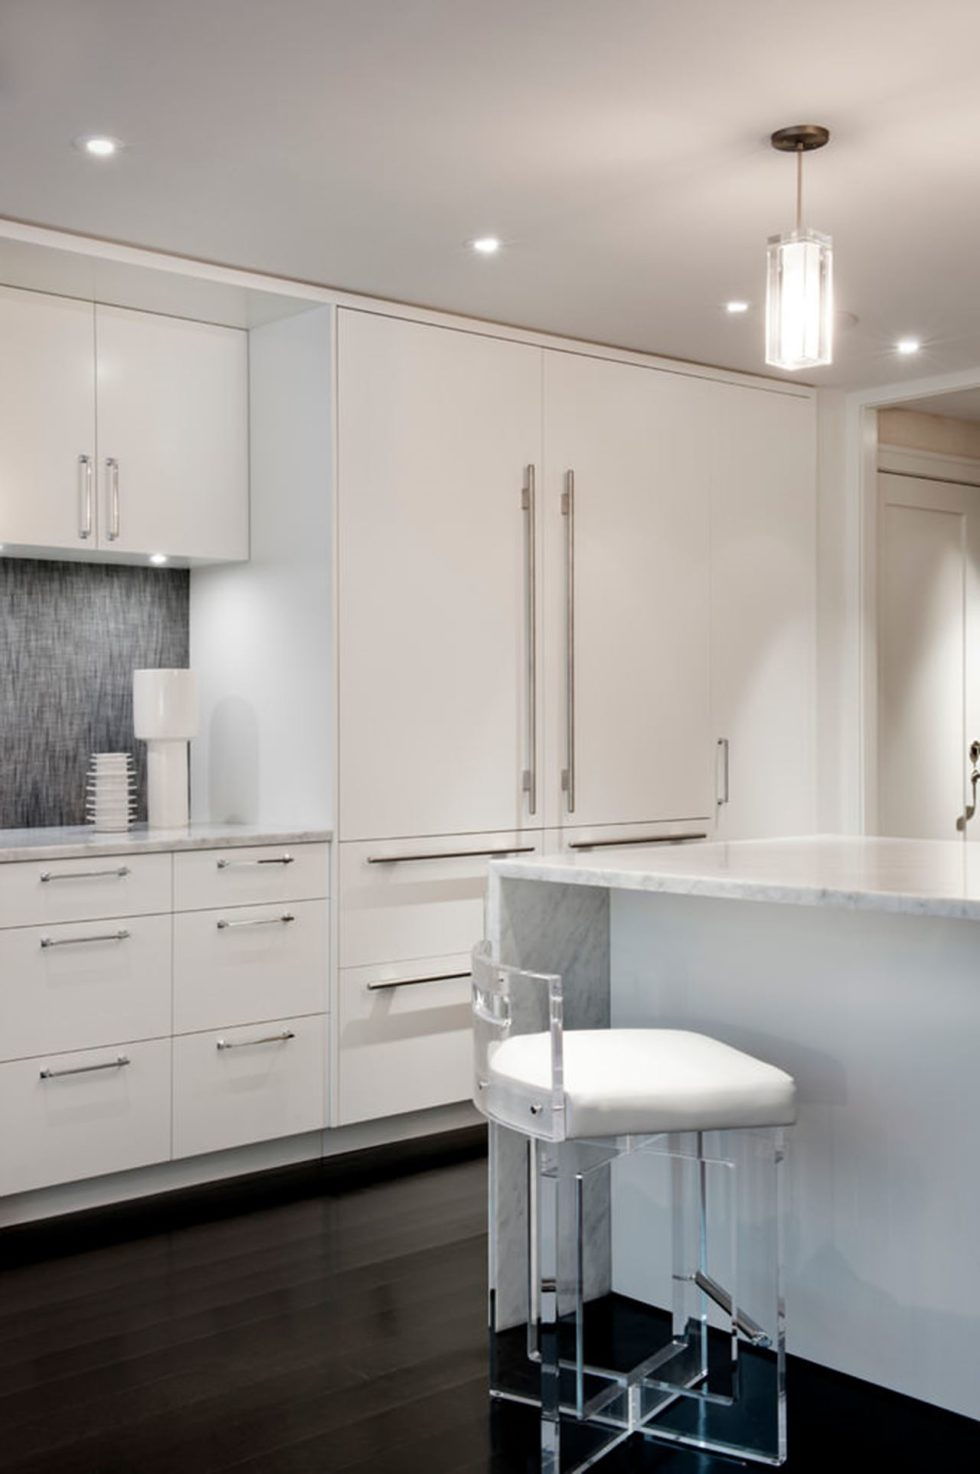 New York townhouse in a mixed style - A white kitchen is classic